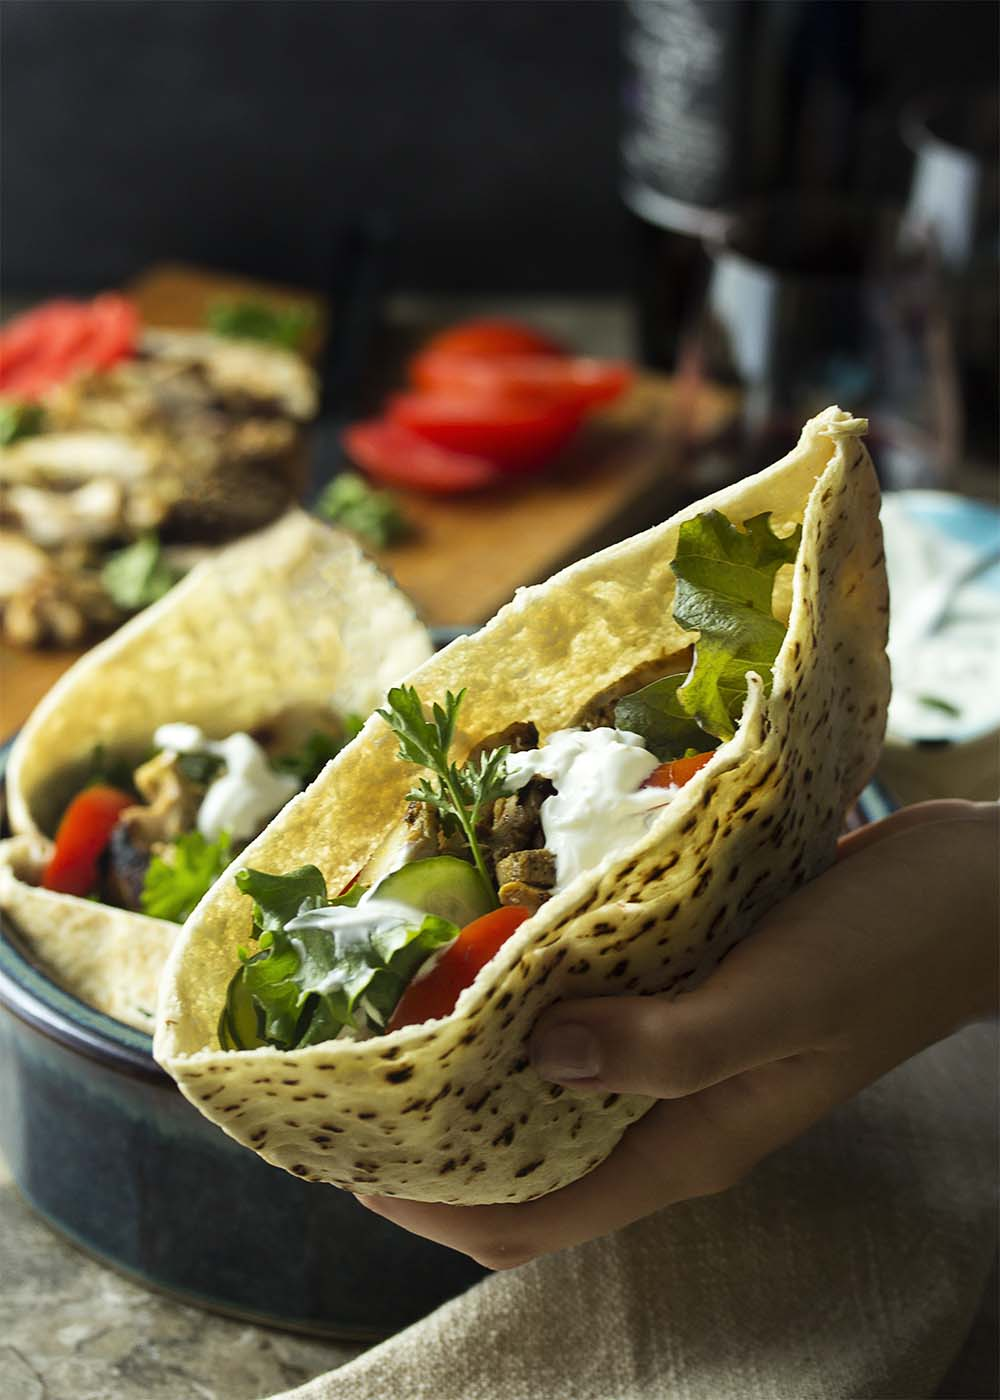 A hand holding out a pita stuffed with chicken shawarma, vegetables, and yogurt sauce.